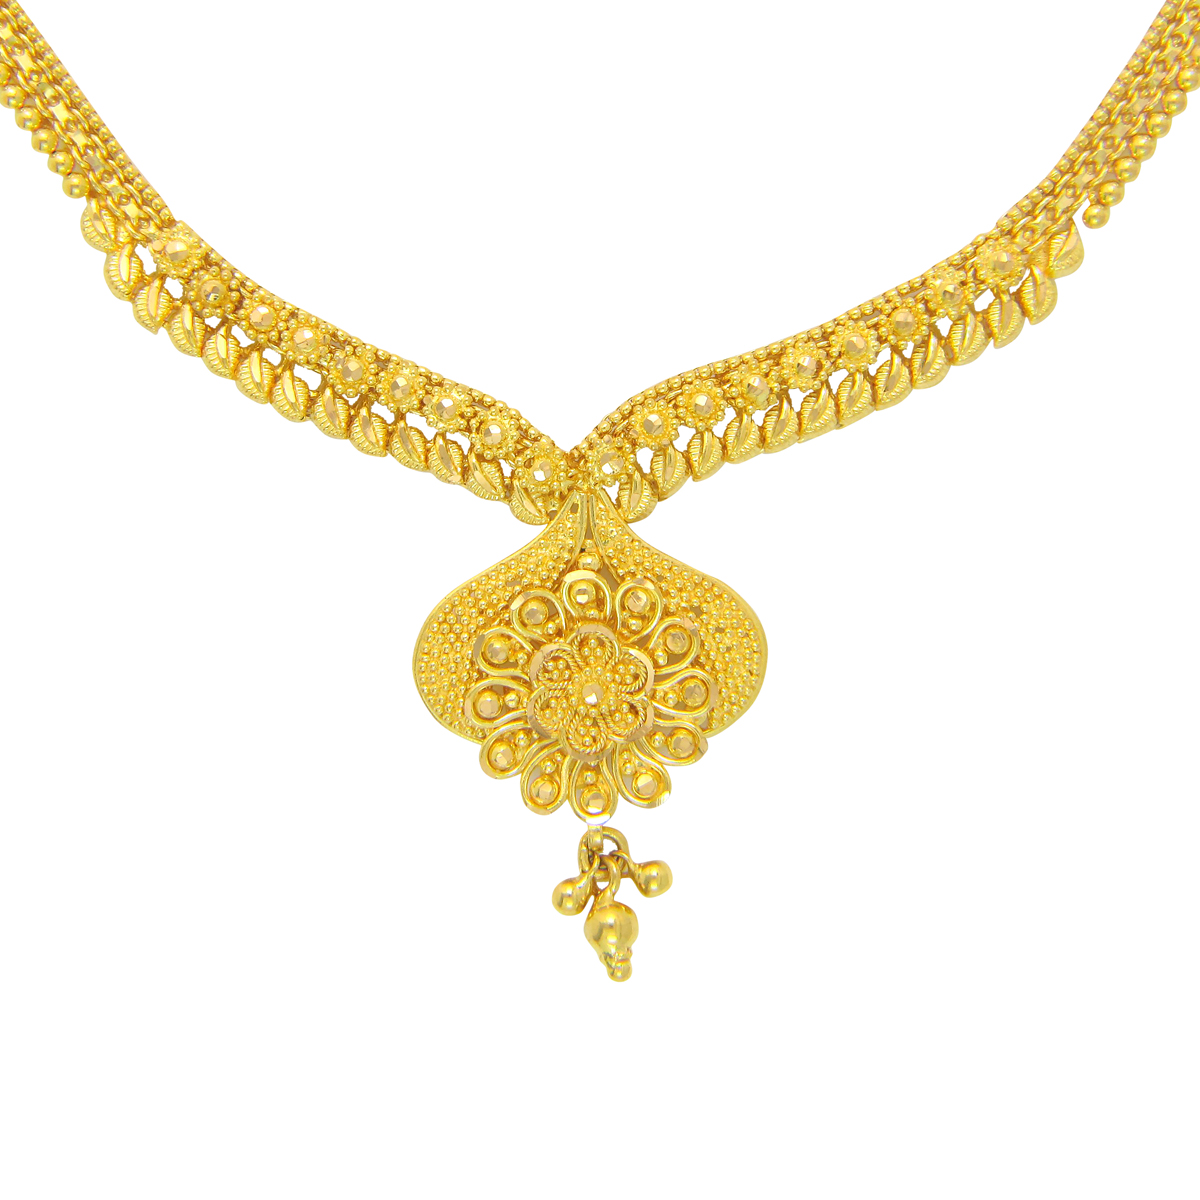 Popley 22Kt Gold Bandhan Necklace - A47